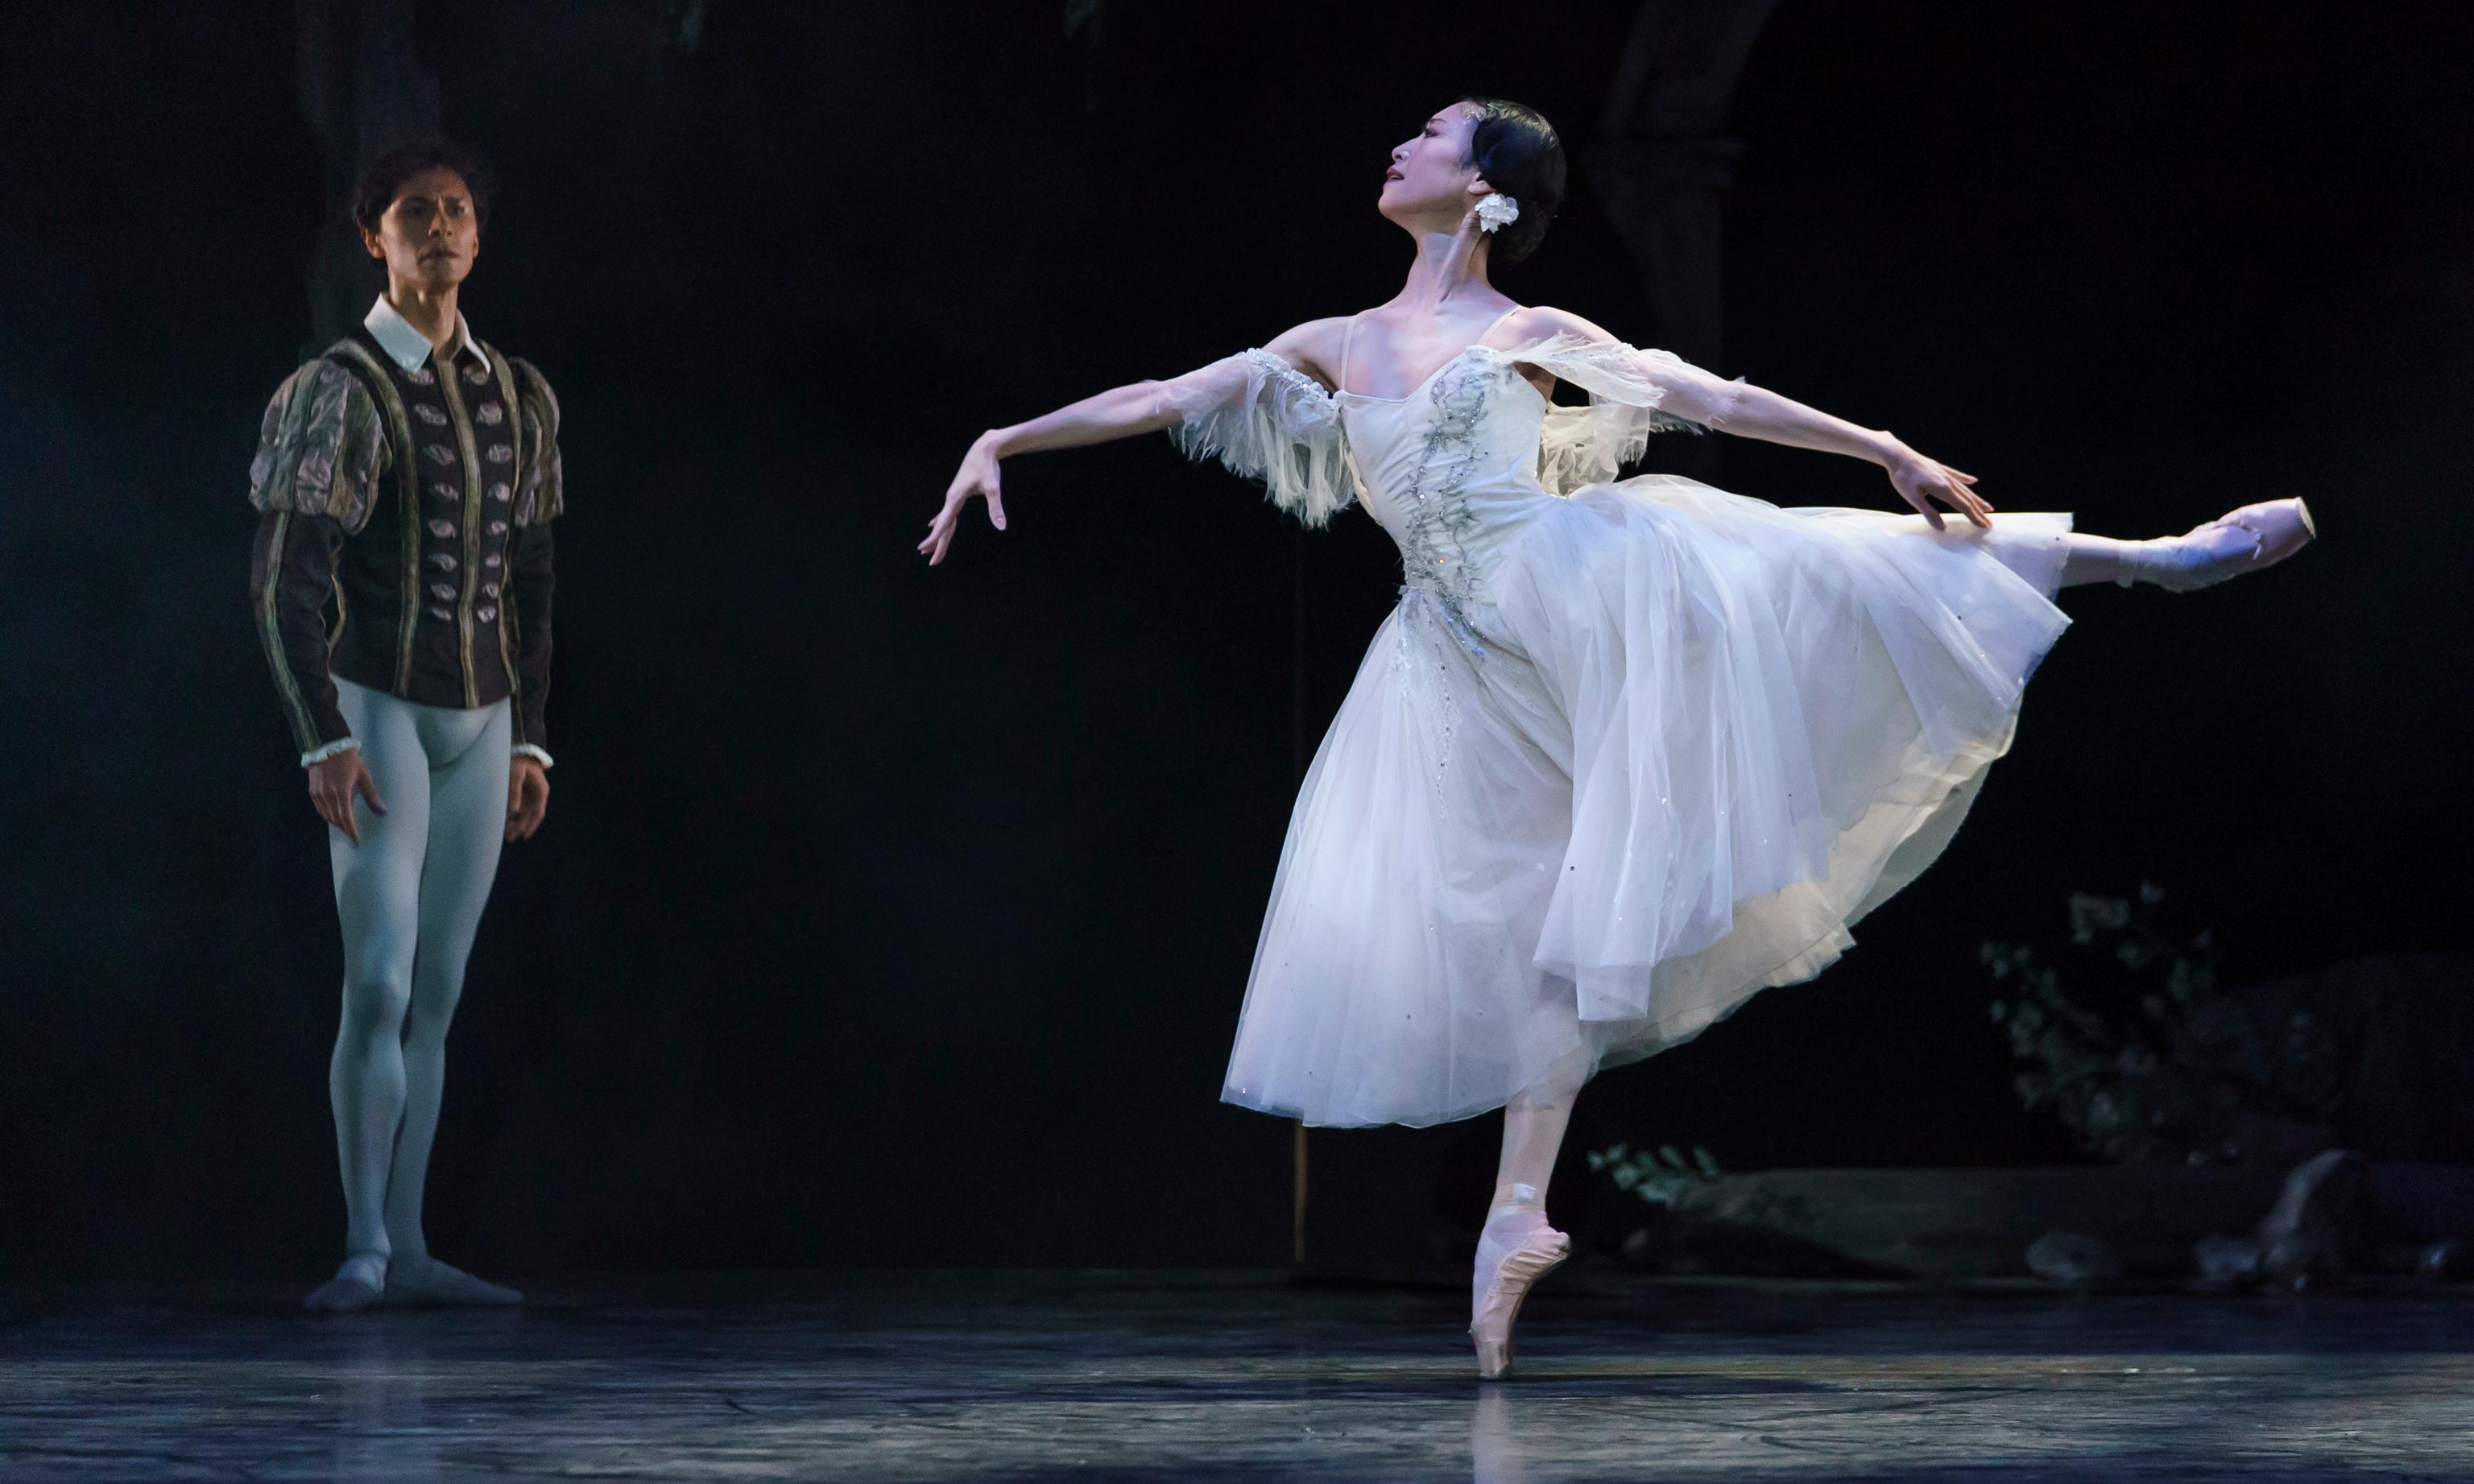 Birmingham Royal Ballet: Giselle review – gentle touch ignites passion